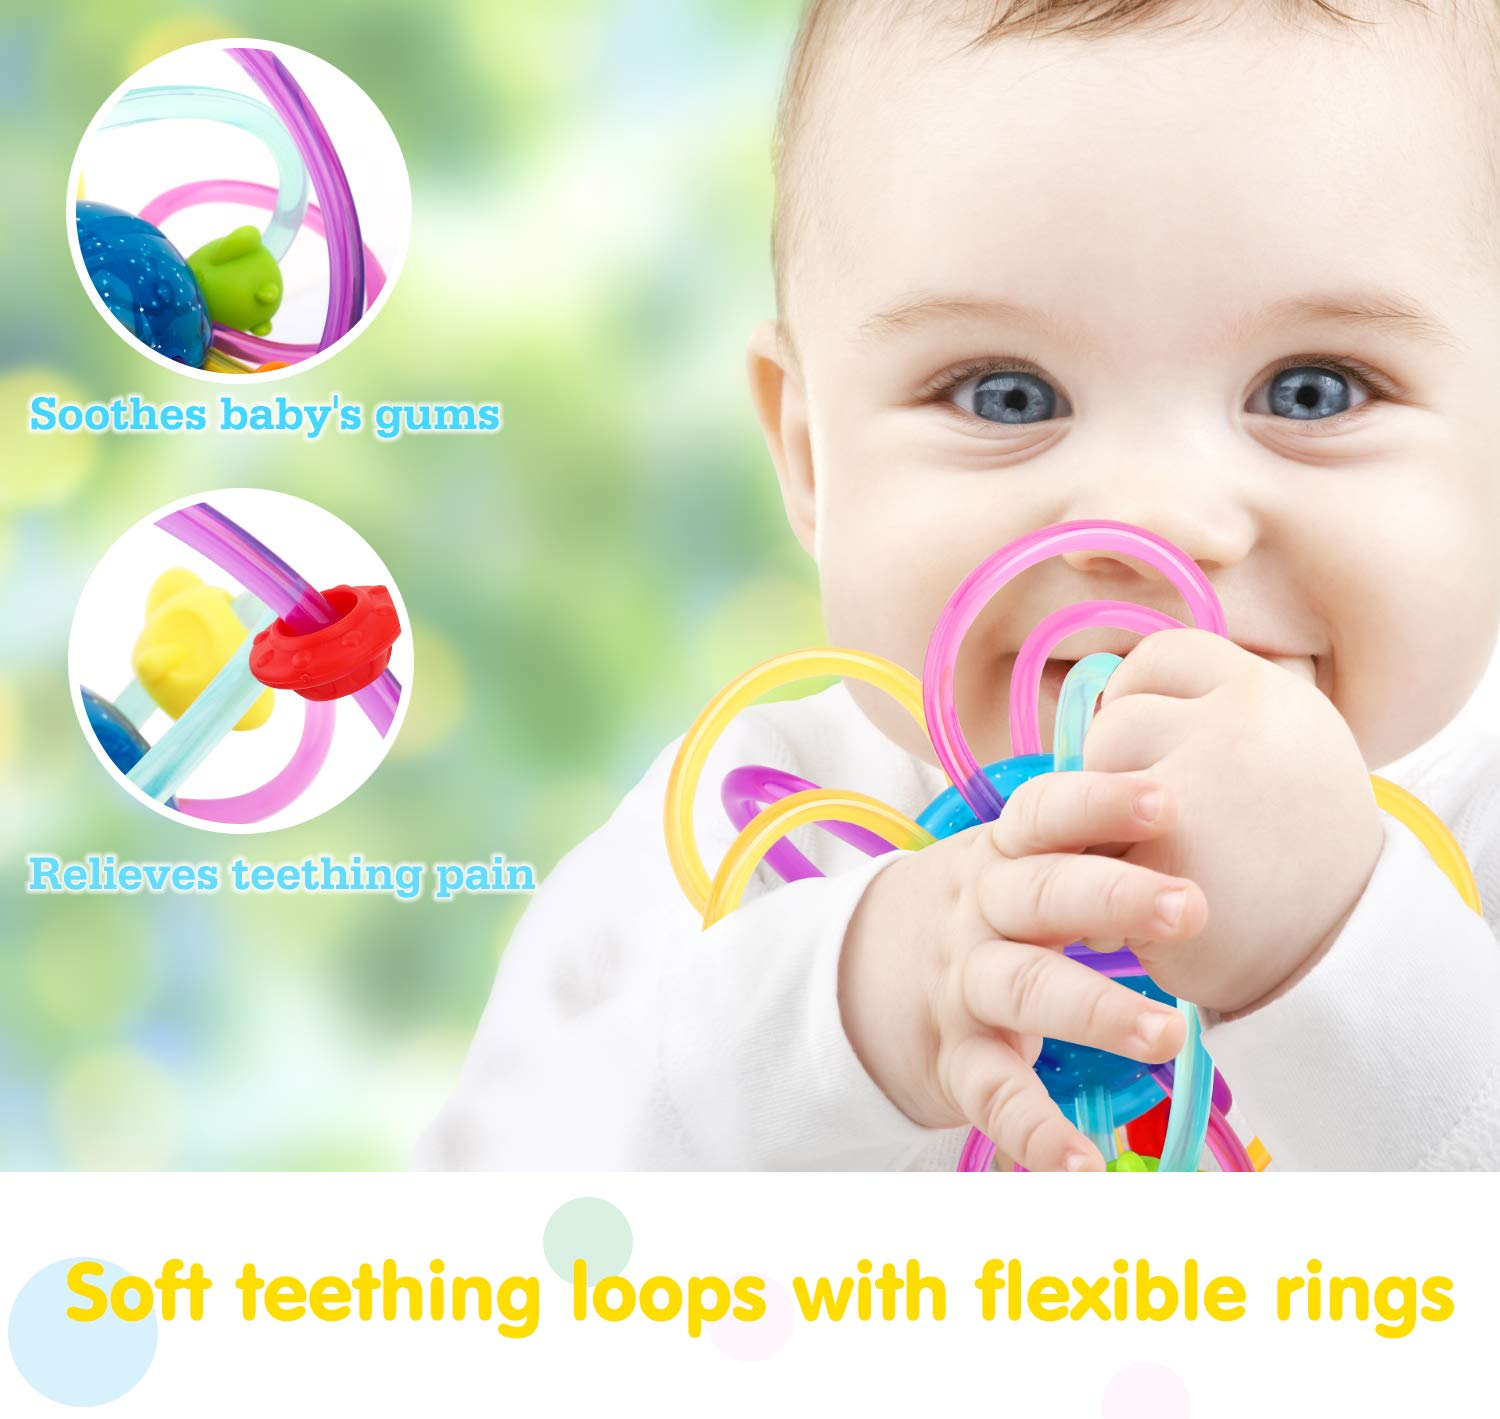 Zooawa Baby Teether BPA-Free Teether Ball Rattle Toy for Infants and Toddlers Soft Rattle and Sensory Ball Teething Toy for Pain Relief Easy to Hold Translucent